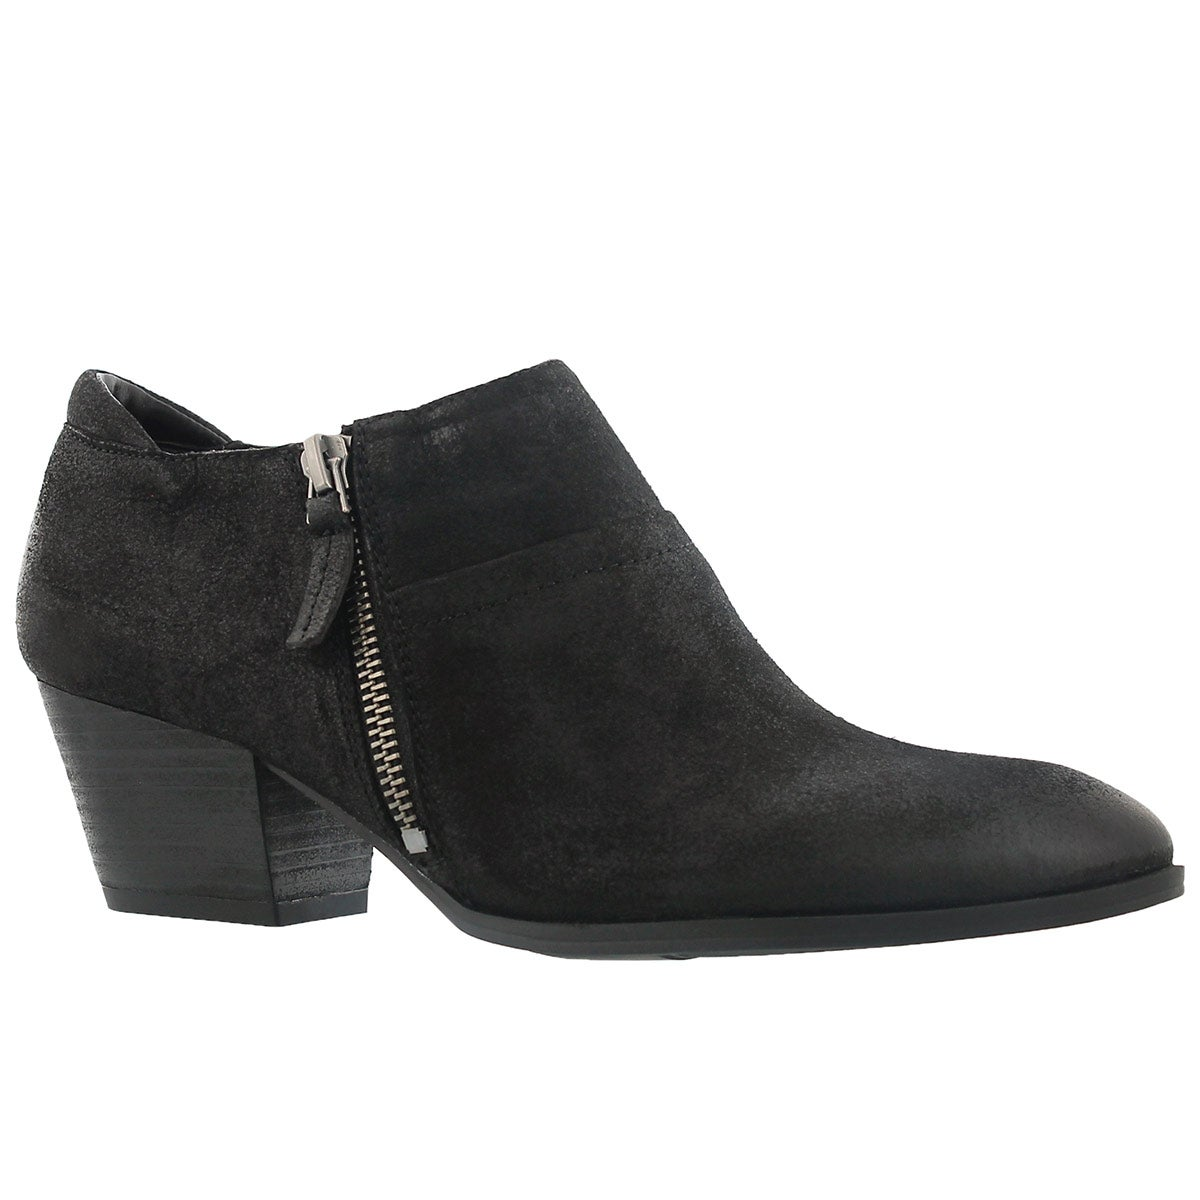 Lds Greco blk zip up casual heel